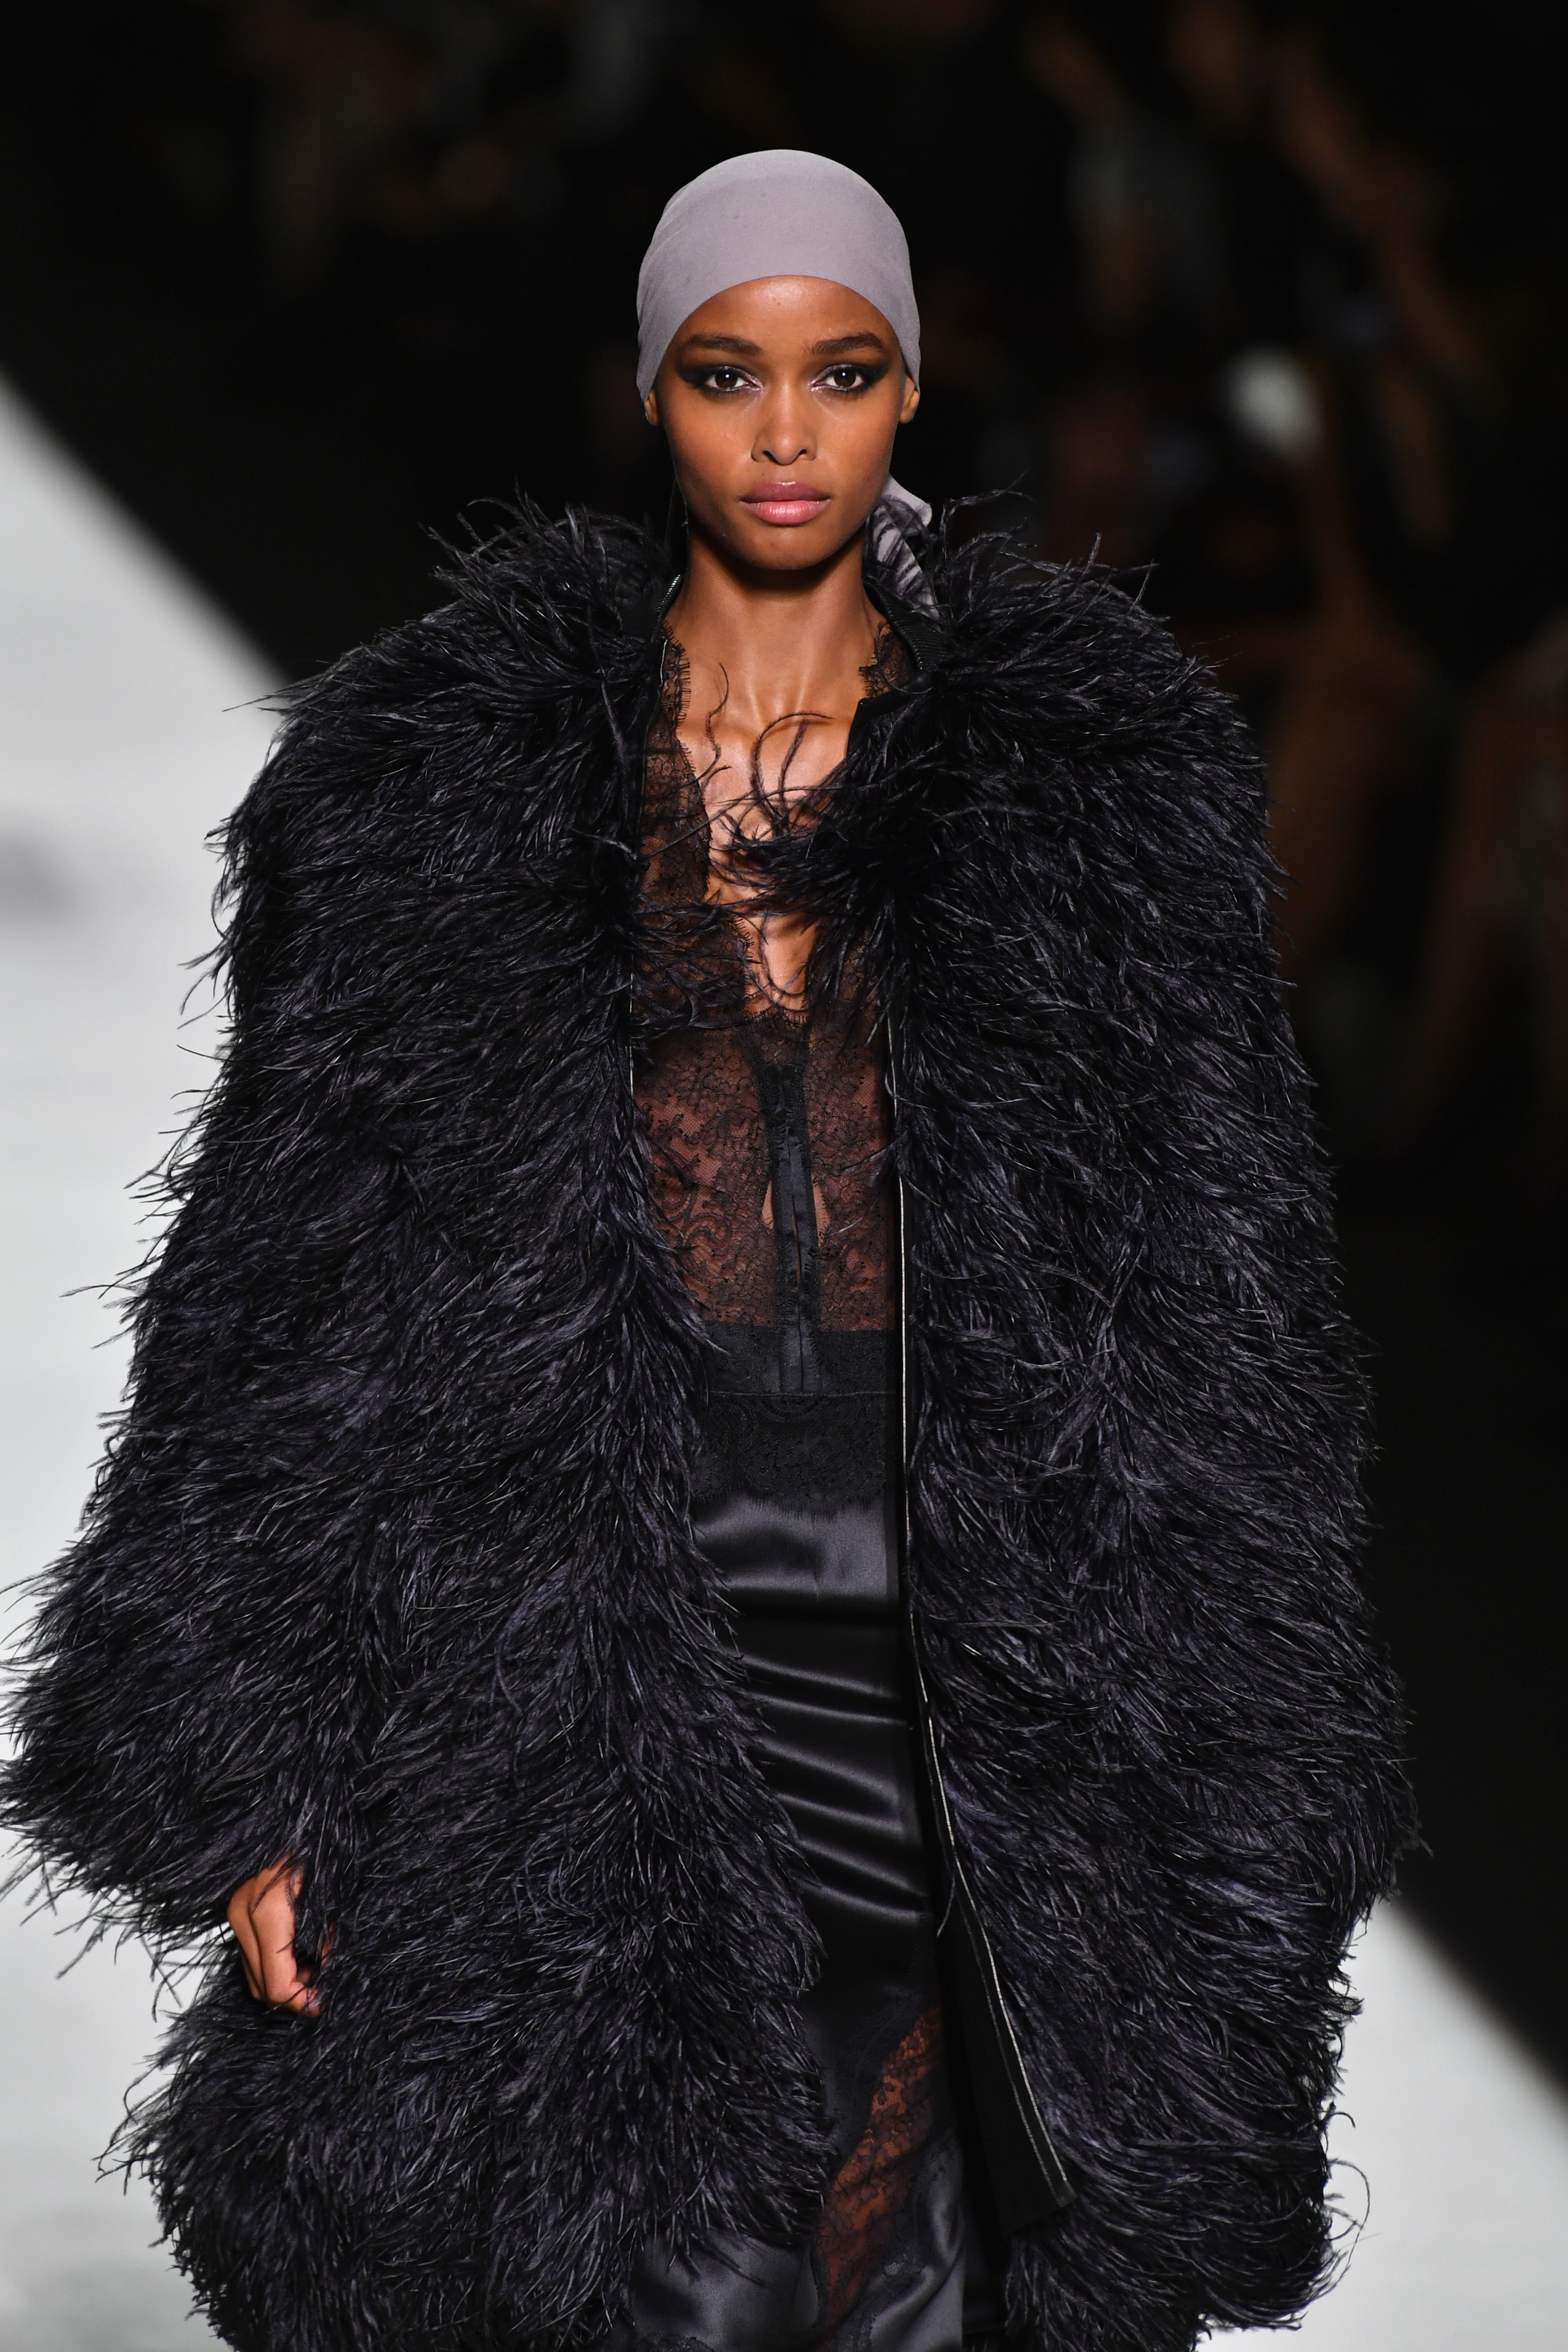 NEW YORK, NY – SEPTEMBER 05  A model walks the runway at the Tom Ford  fashion show during New York Fashion Week at Park Avenue Armory on  September 5, ... 5eaebc70b217